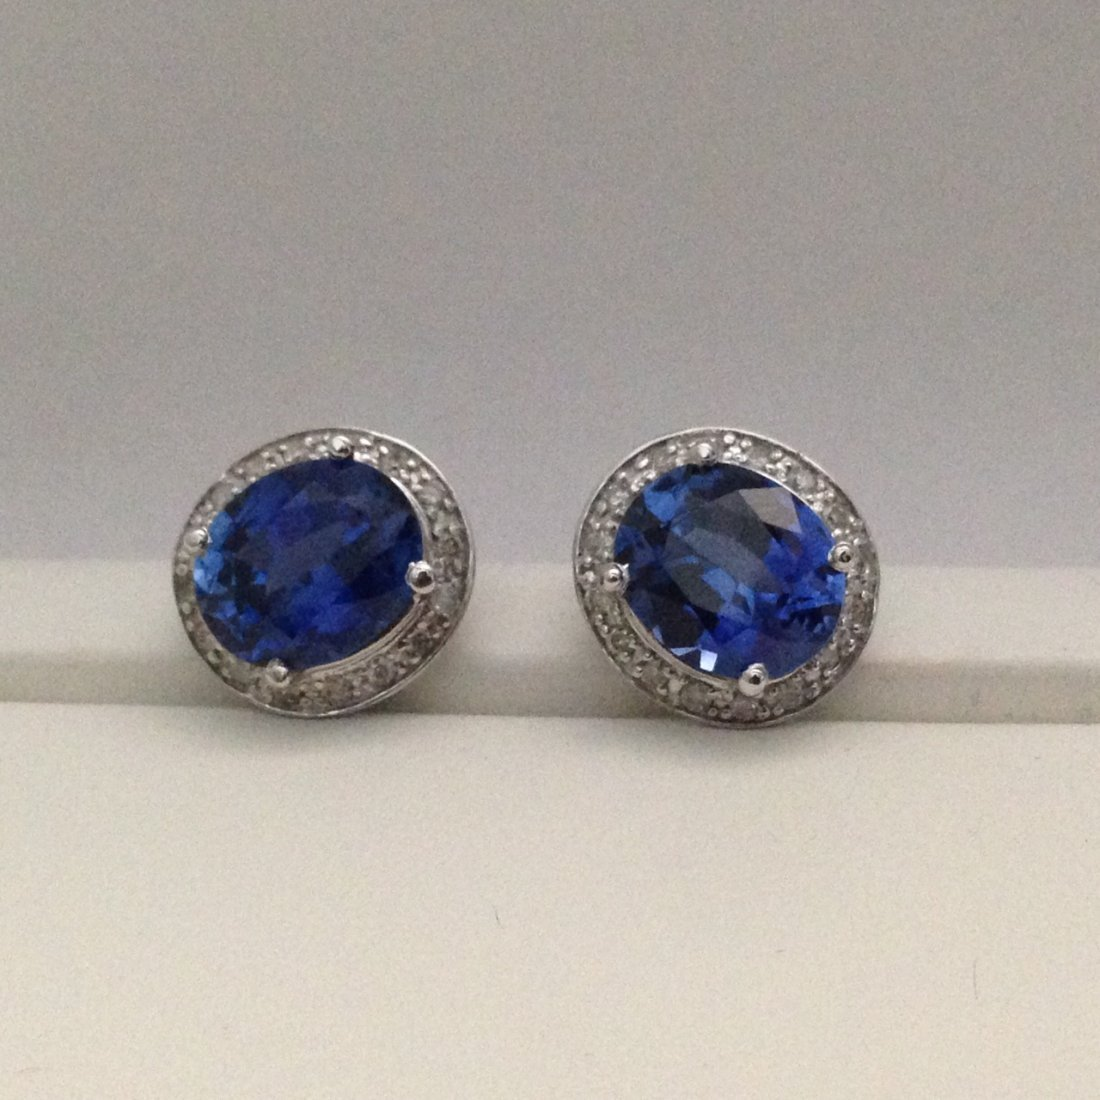 14K White Gold Blue Sapphire And Diamond Earrings/STUDS